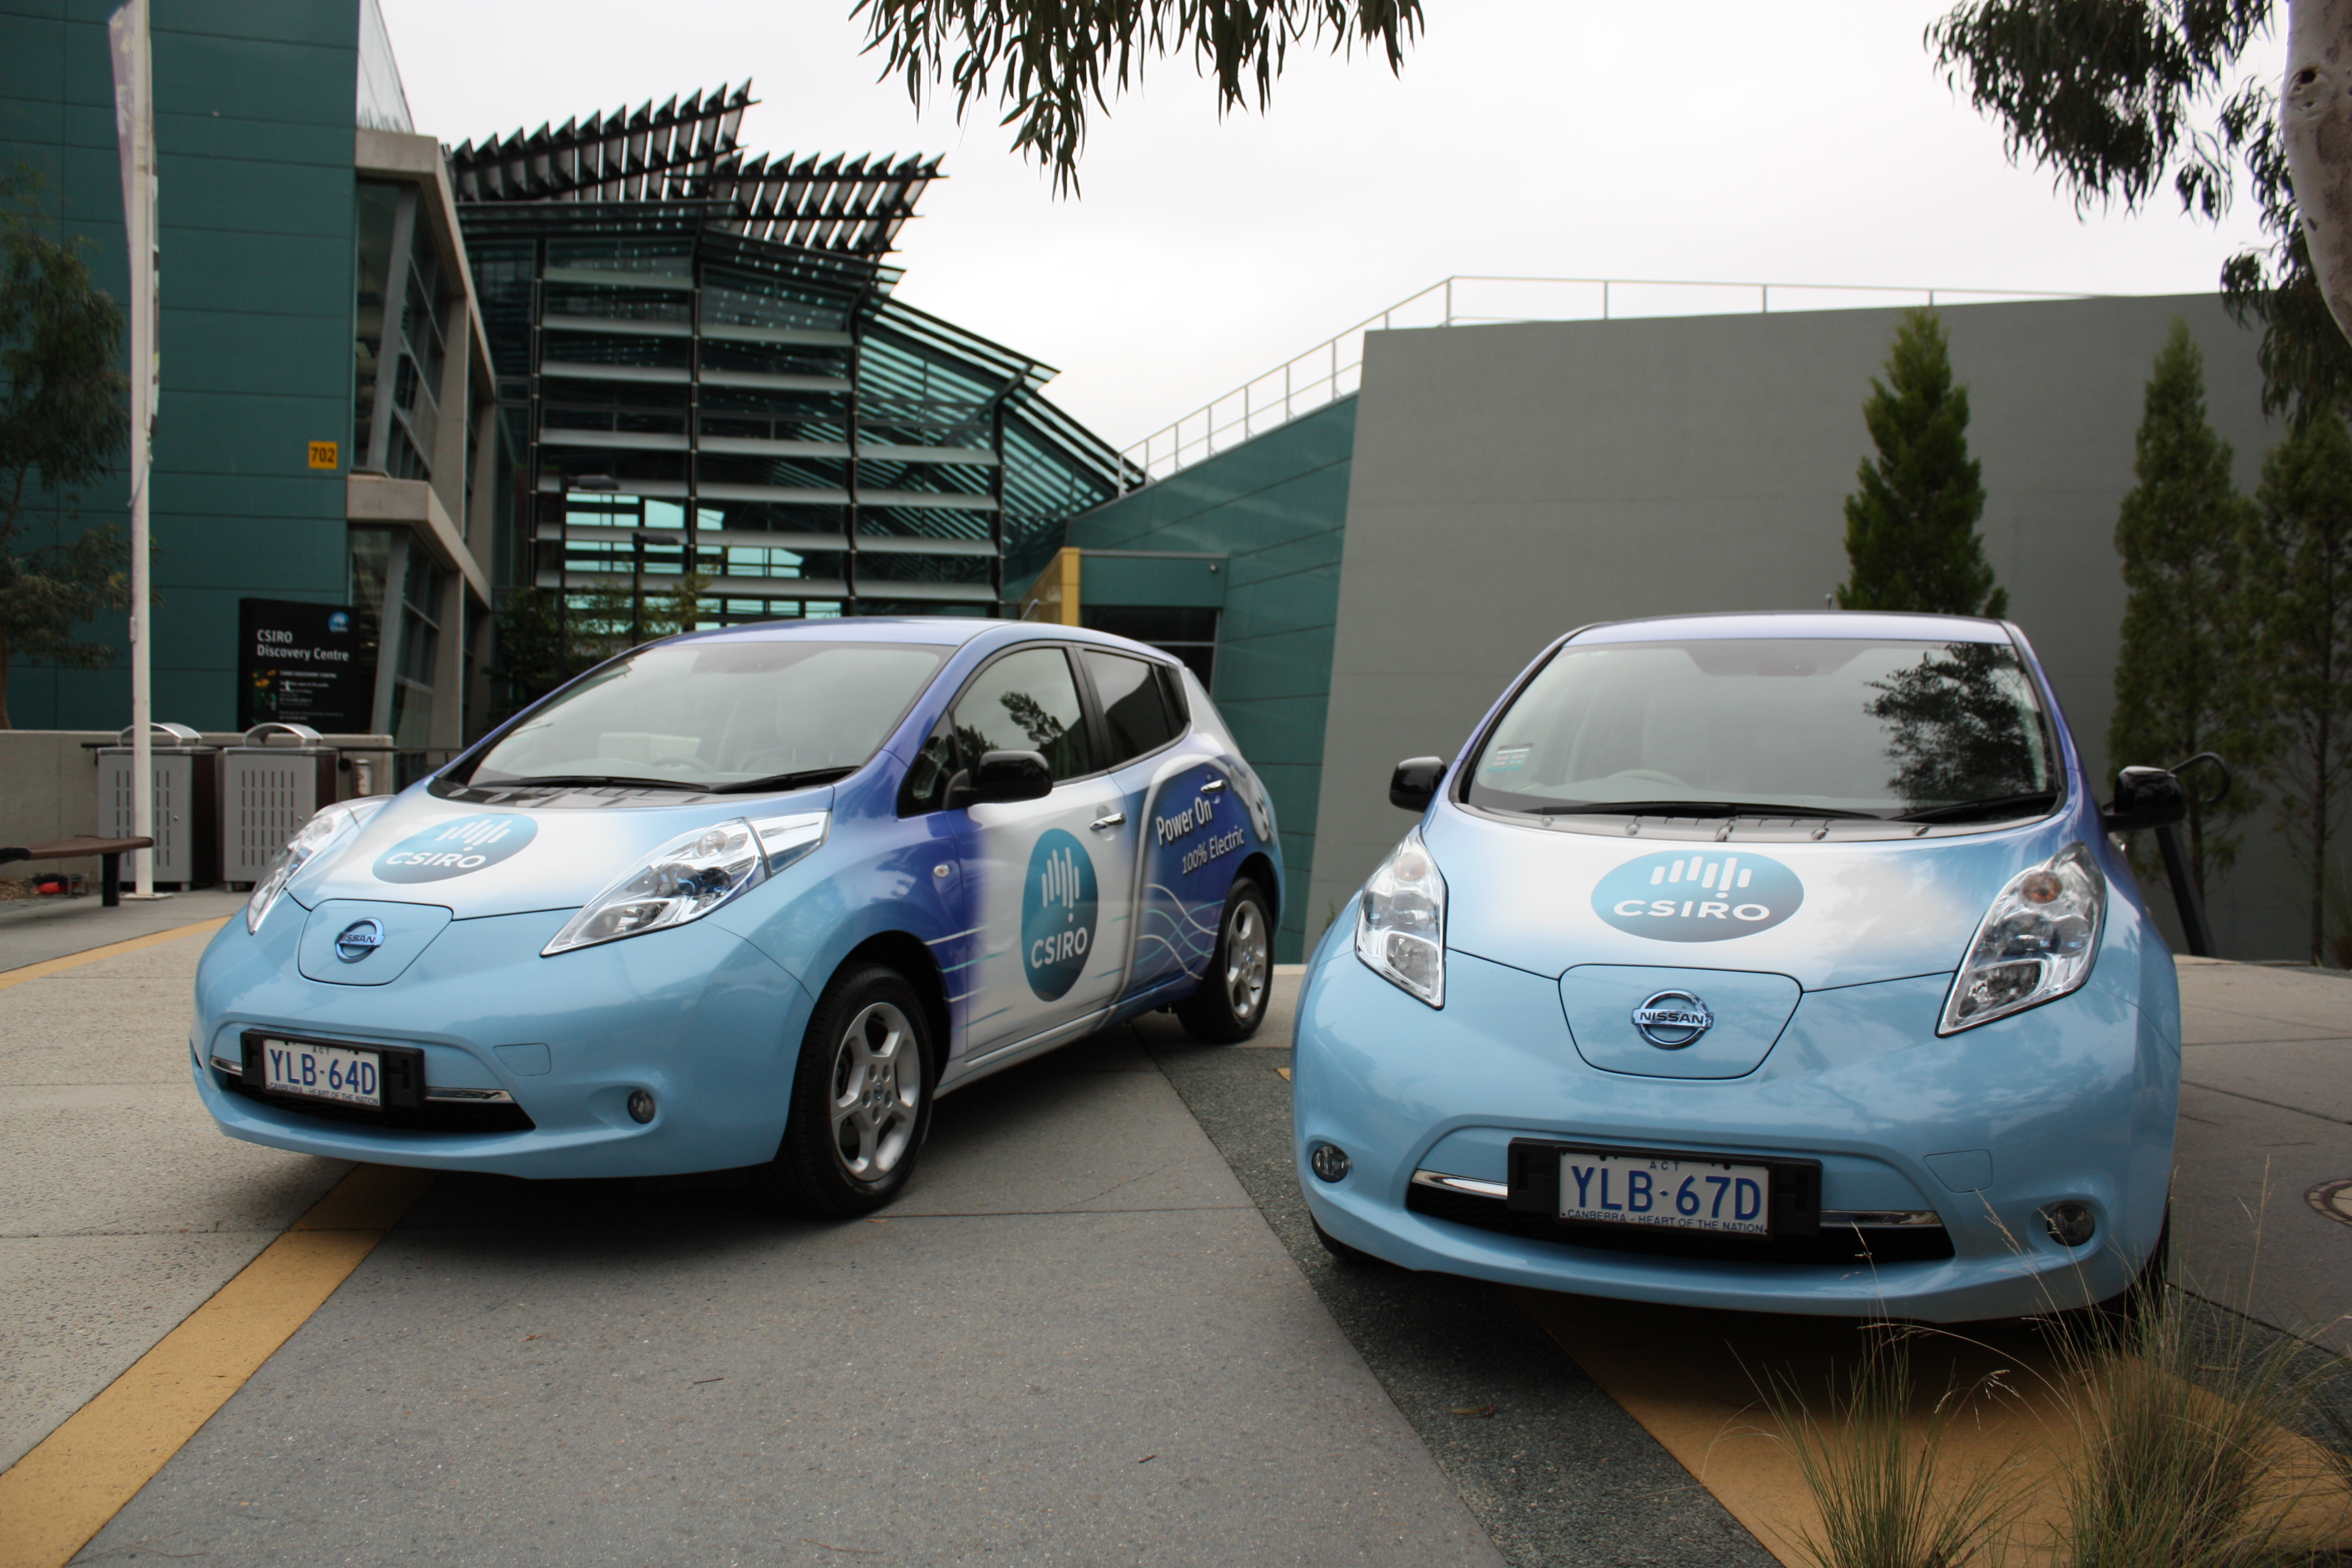 Bonnet view of CSIRO electric cars.